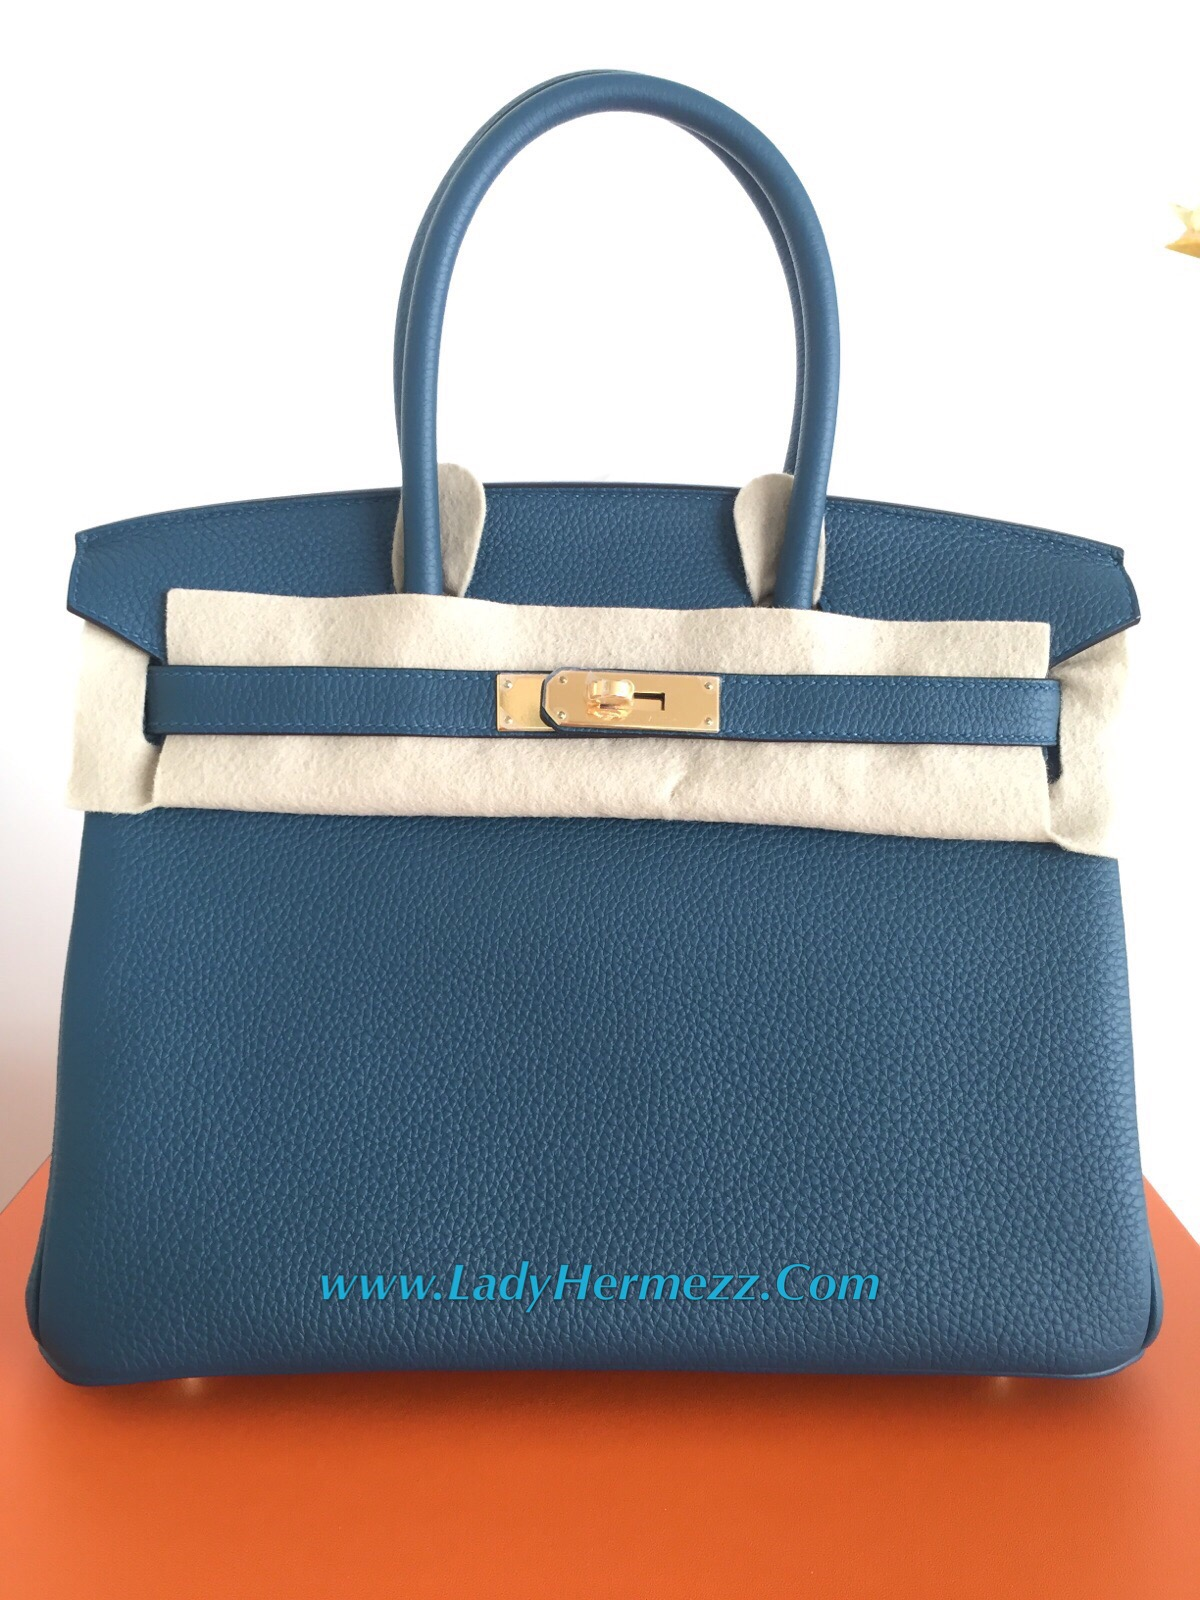 birkin bag knockoffs - LadyHermezz.Com - Page 2 of 3 - email: sales@LadyHermezz.Com